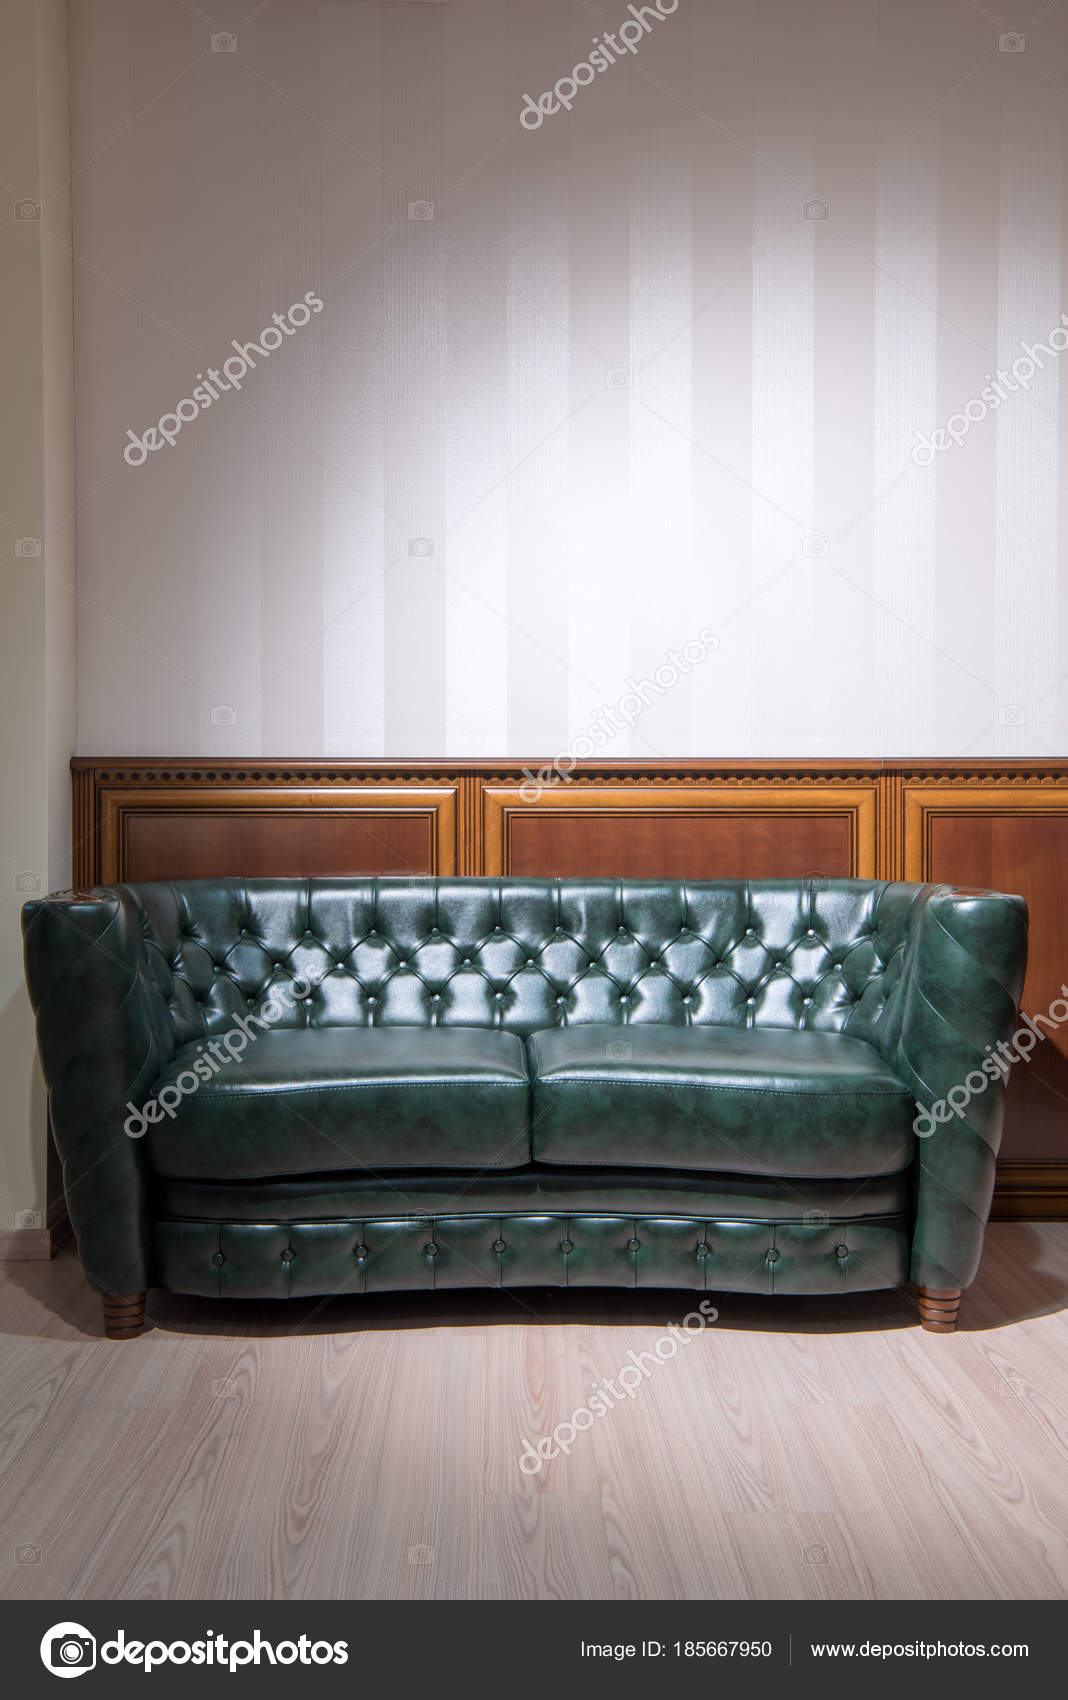 Enjoyable Green Leather Couch Front Wall Wooden Decoration Stock Bralicious Painted Fabric Chair Ideas Braliciousco